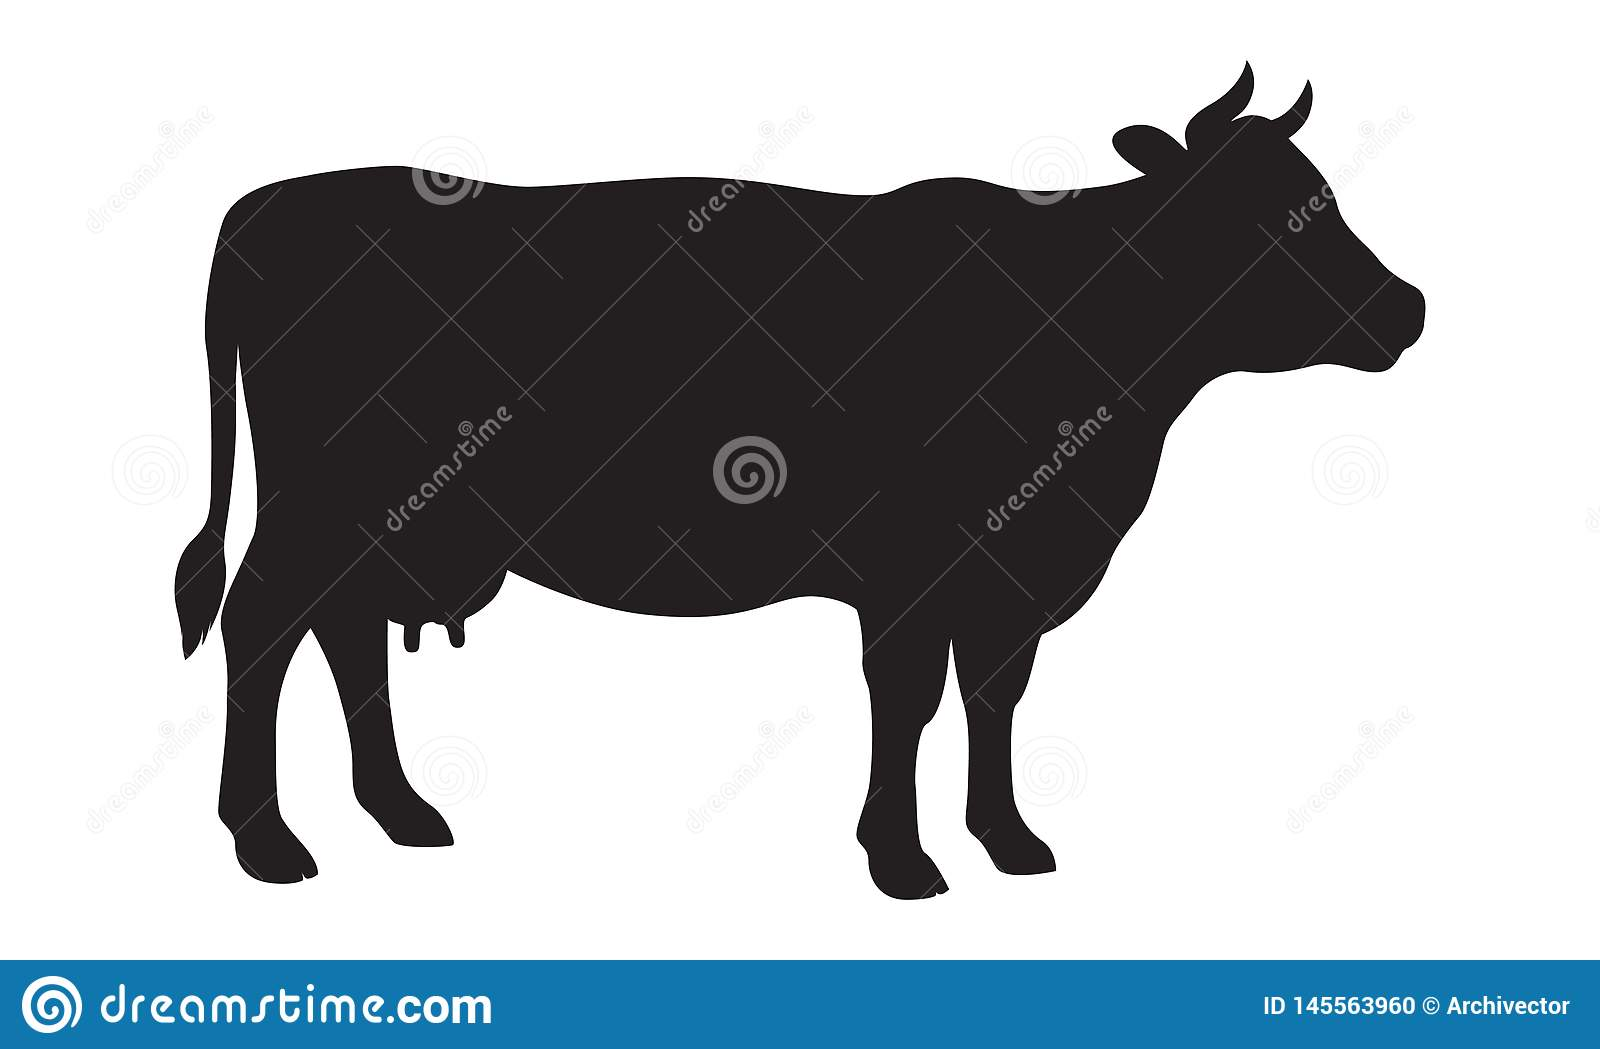 Sign cow black silhouette. Farm animals